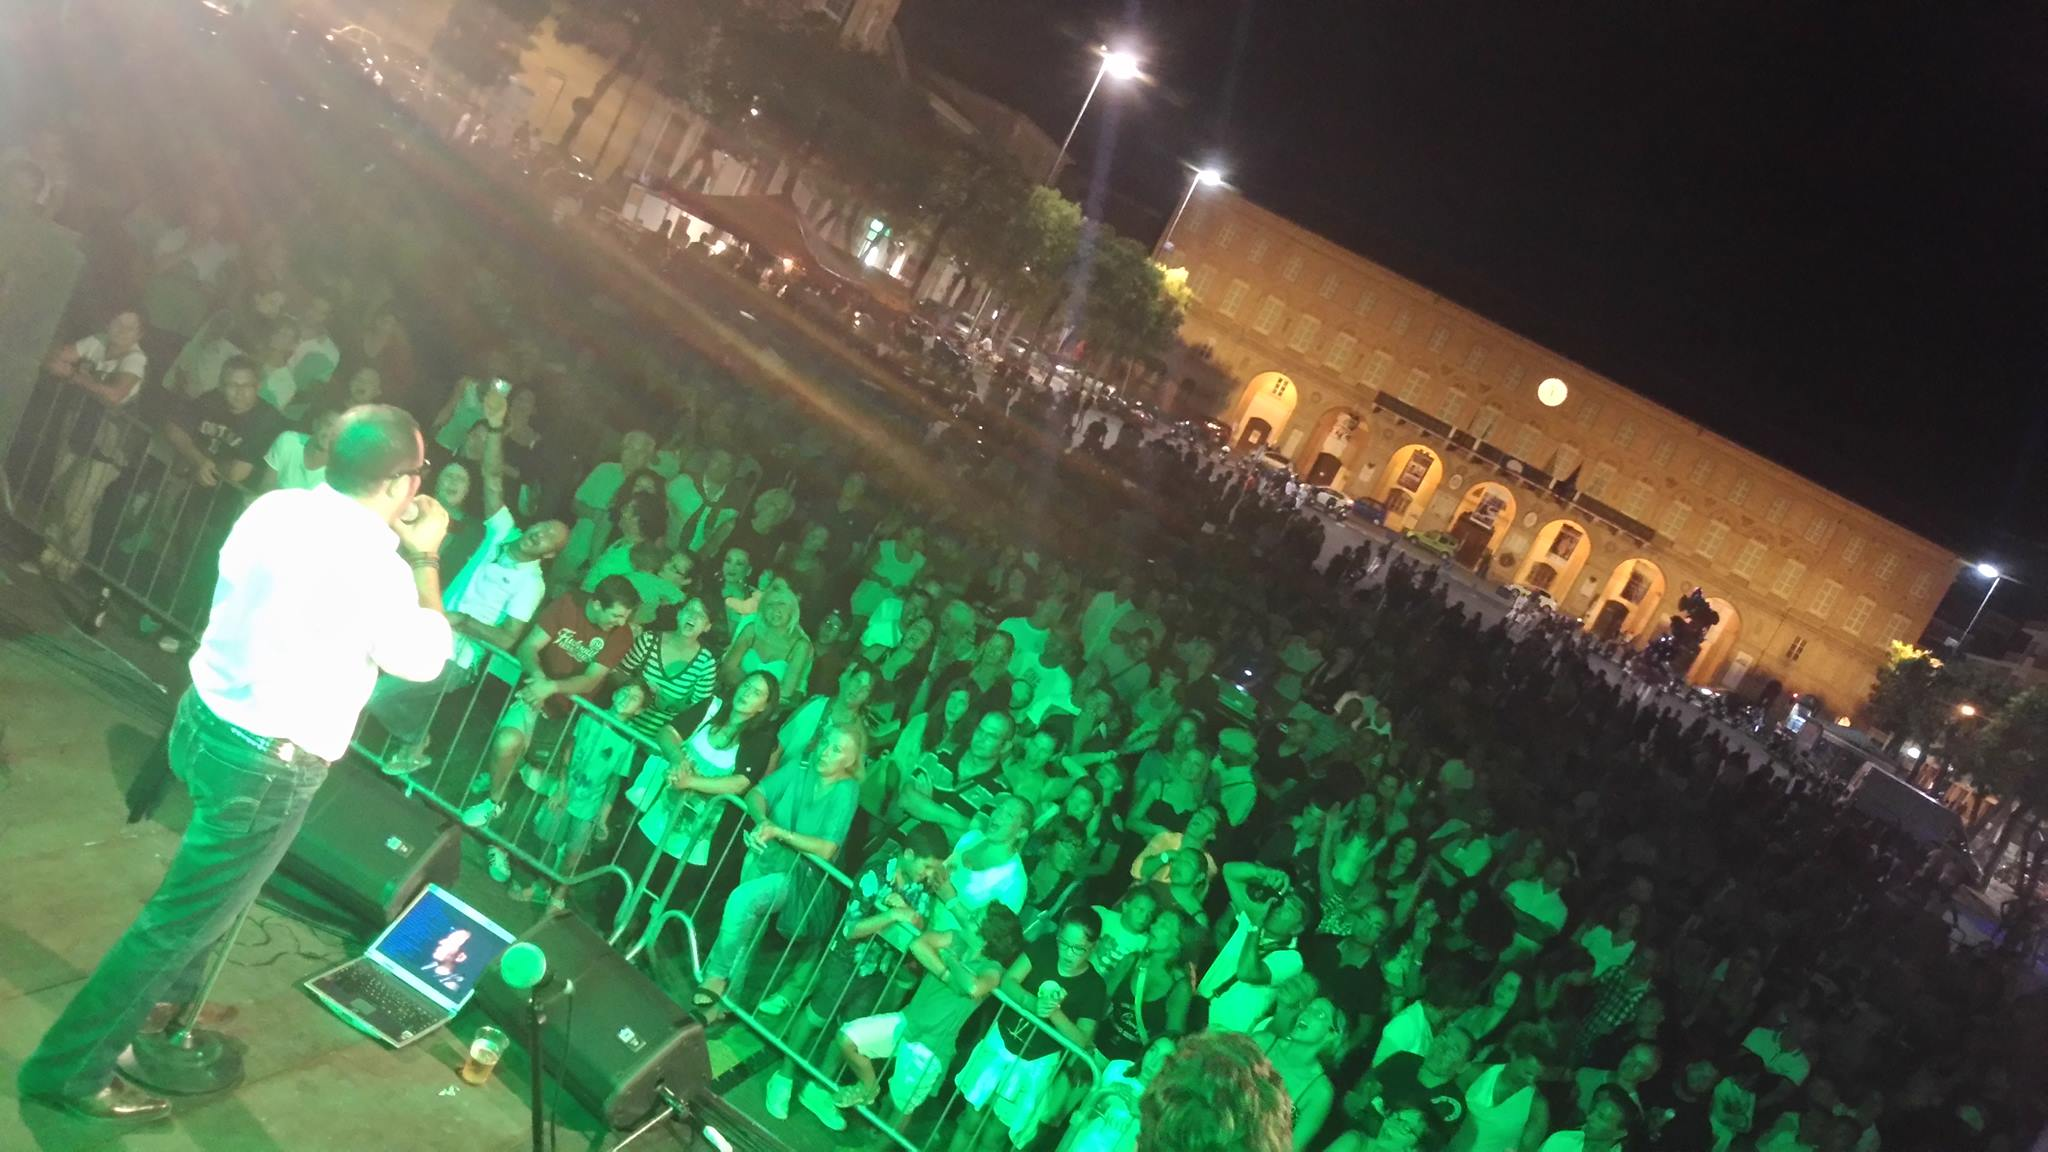 Concerto in Piazza